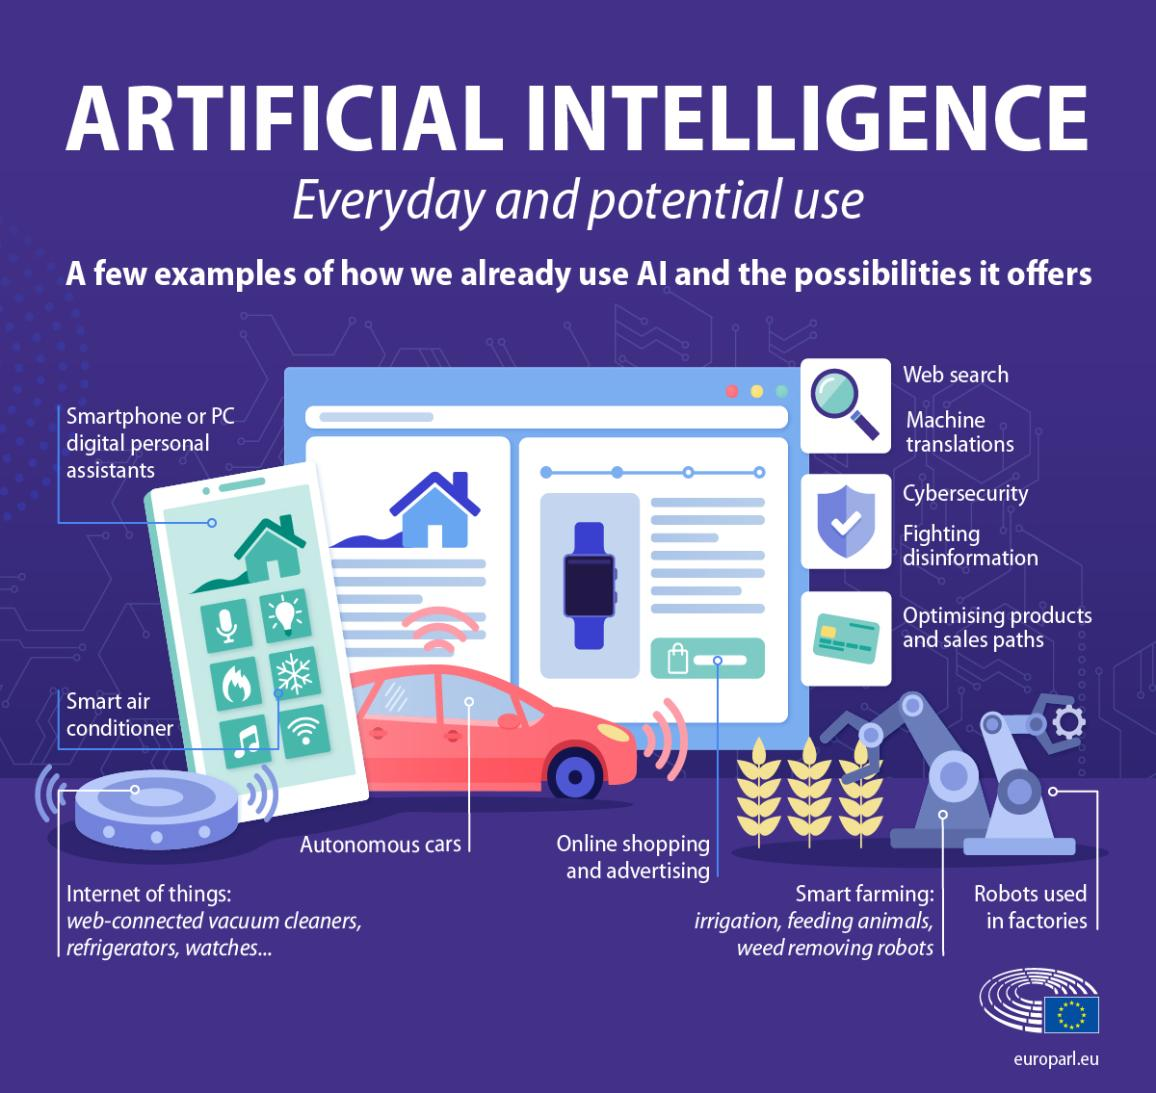 Infographic showing examples of artificial intelligence use in everyday life